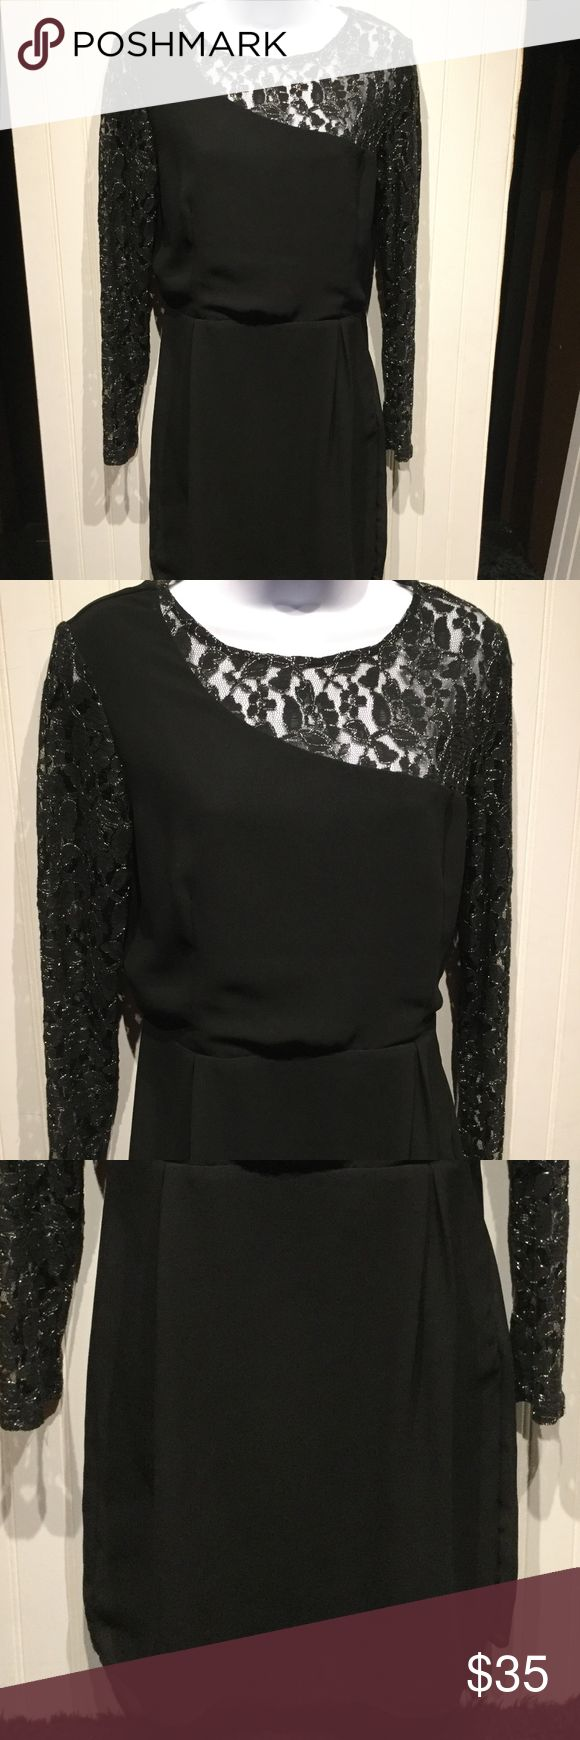 """Sugar Hill Boutique Stunning Sugar Hill Boutique dress in size medium.  Very elegant with it's laced long sleeves.  100% polyester.  Delicate fabric handle with care and hand wash cold.  This dress is perfect for those holiday gatherings!  Falls just above the knees, I am 5'8"""". 10% of two or more items from my closet! Sugar Hill Boutique Dresses"""